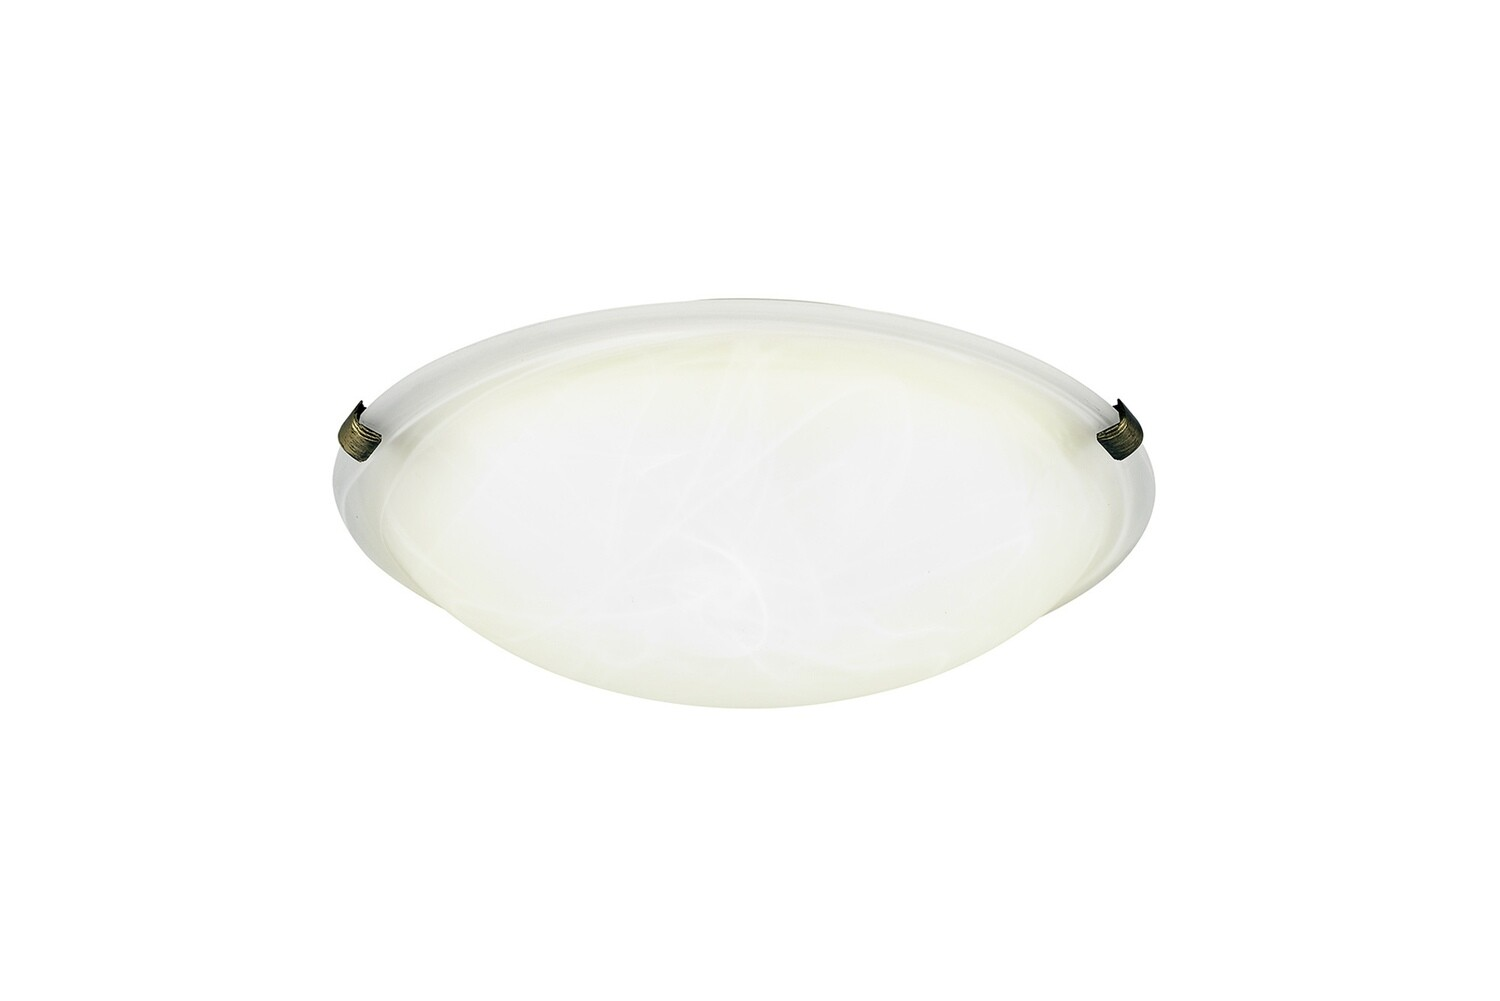 Chester 2 Light E27 Flush Ceiling 300mm Round, Black/Gold With Frosted Alabaster Glass